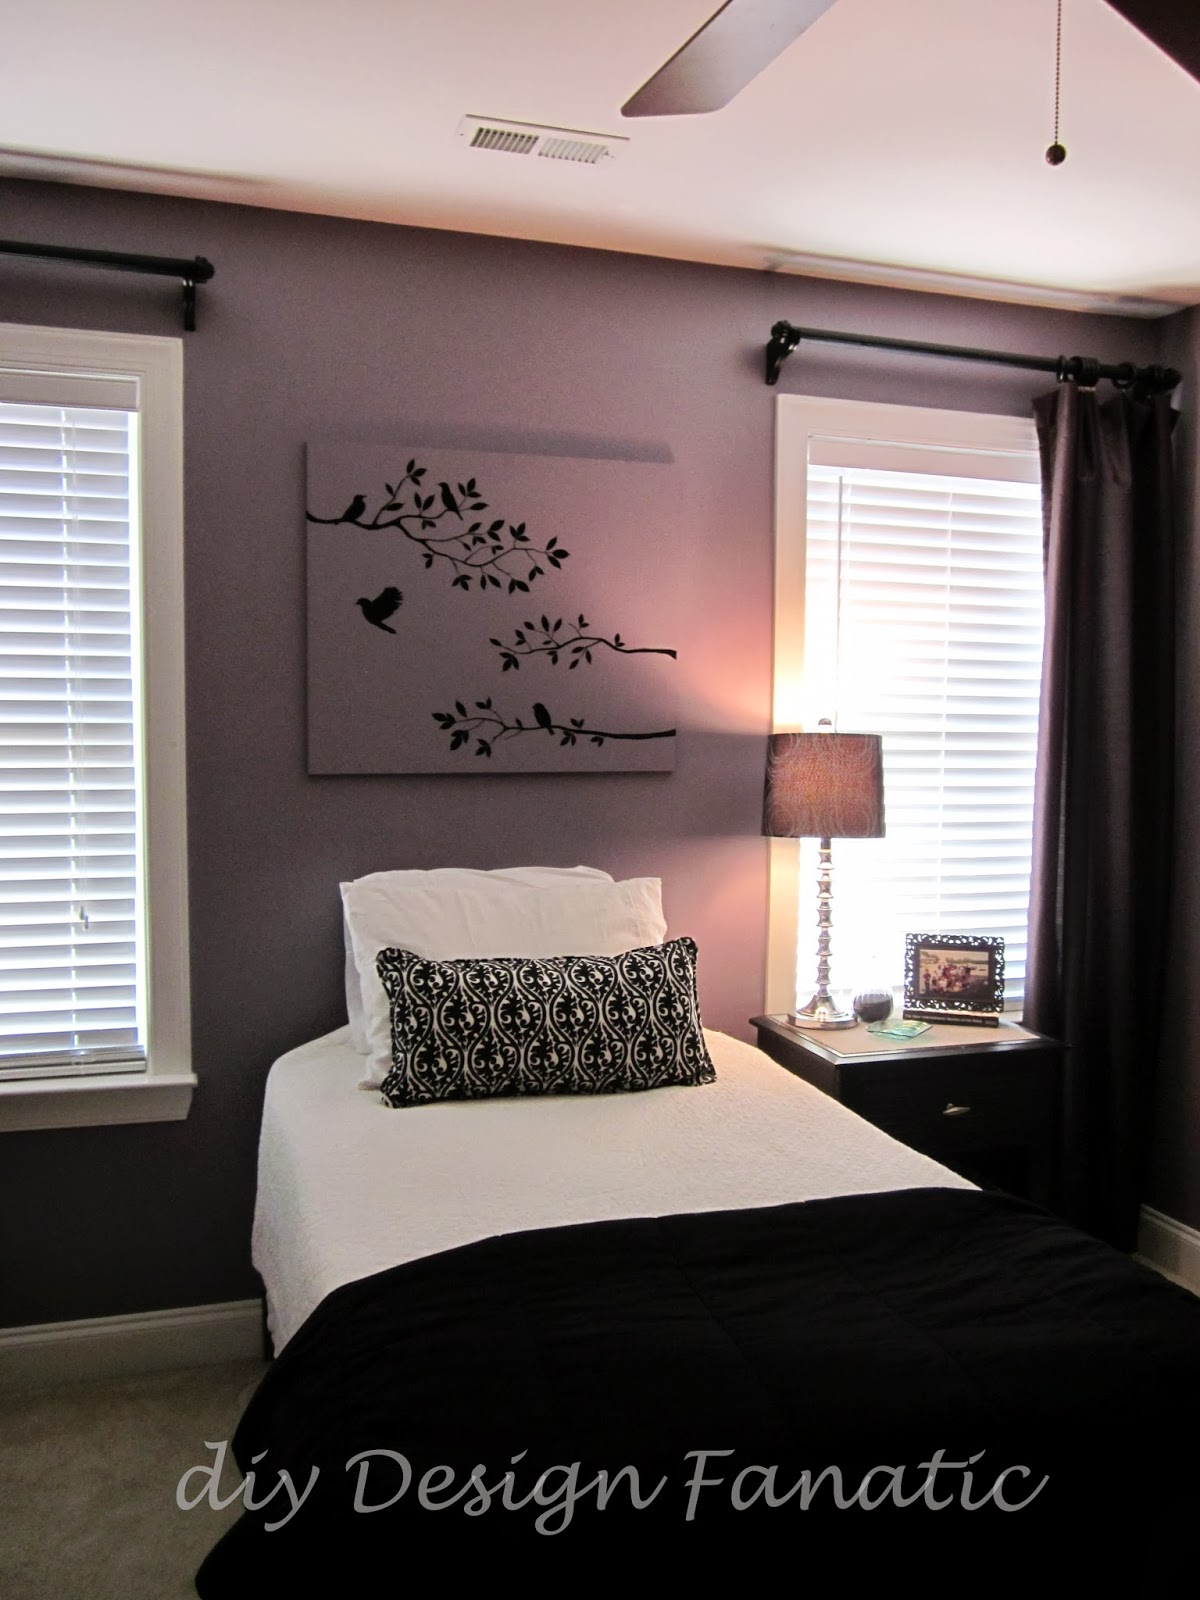 Diy design fanatic new paint for an extra bedroom for Bedroom colour matching